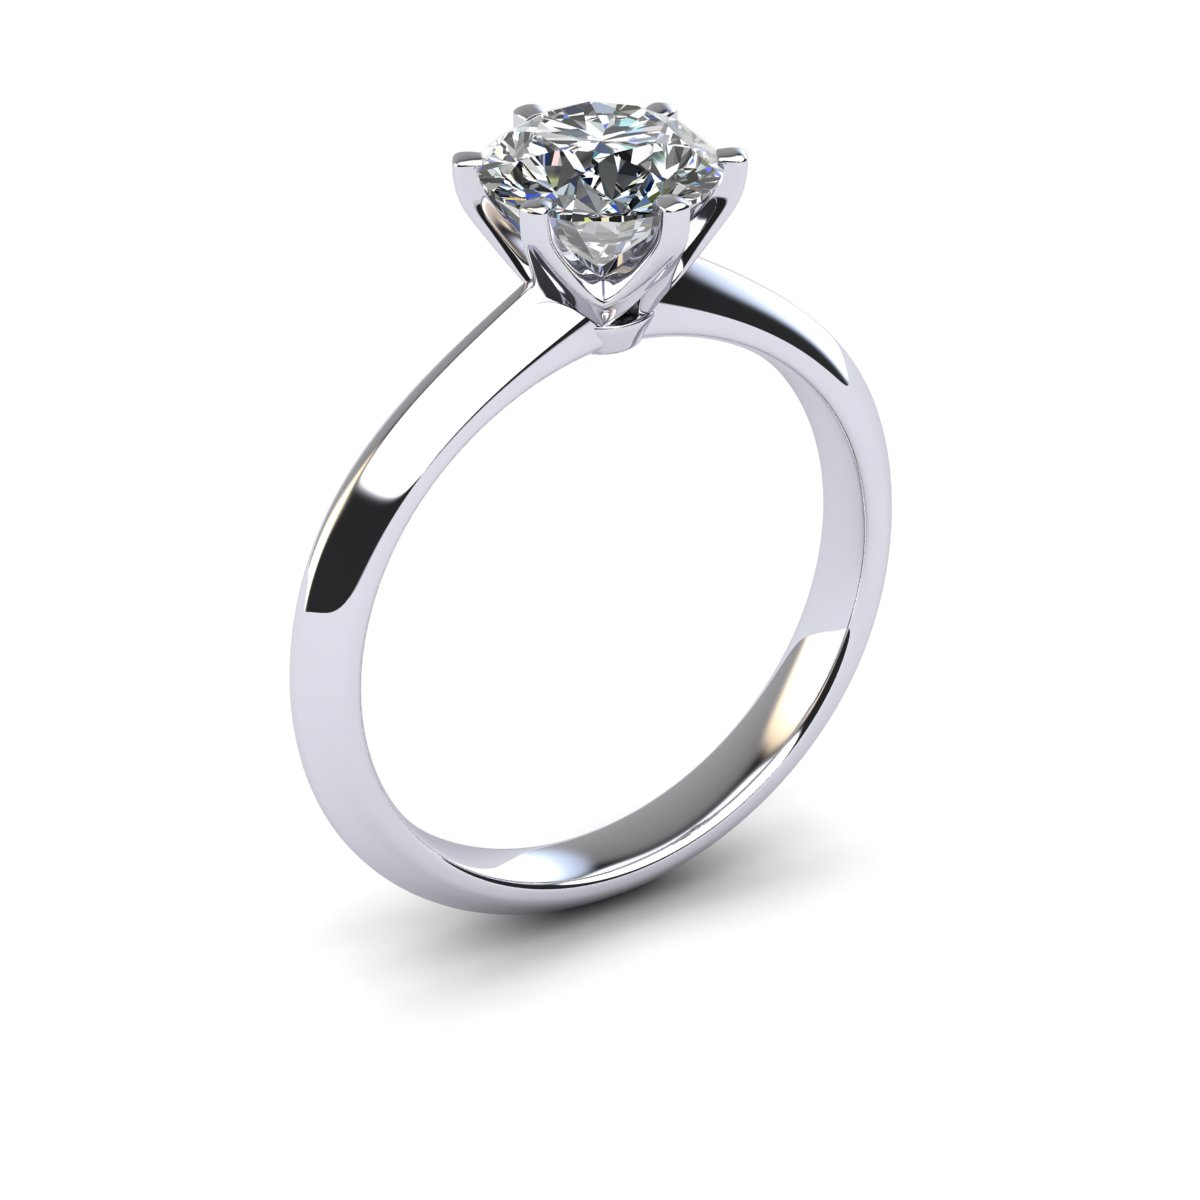 engagement ring styles based on personality traditional wedding rings Representing the past present and future of a relationship this is the perfect traditional engagement ring that will never go out of style that your girl